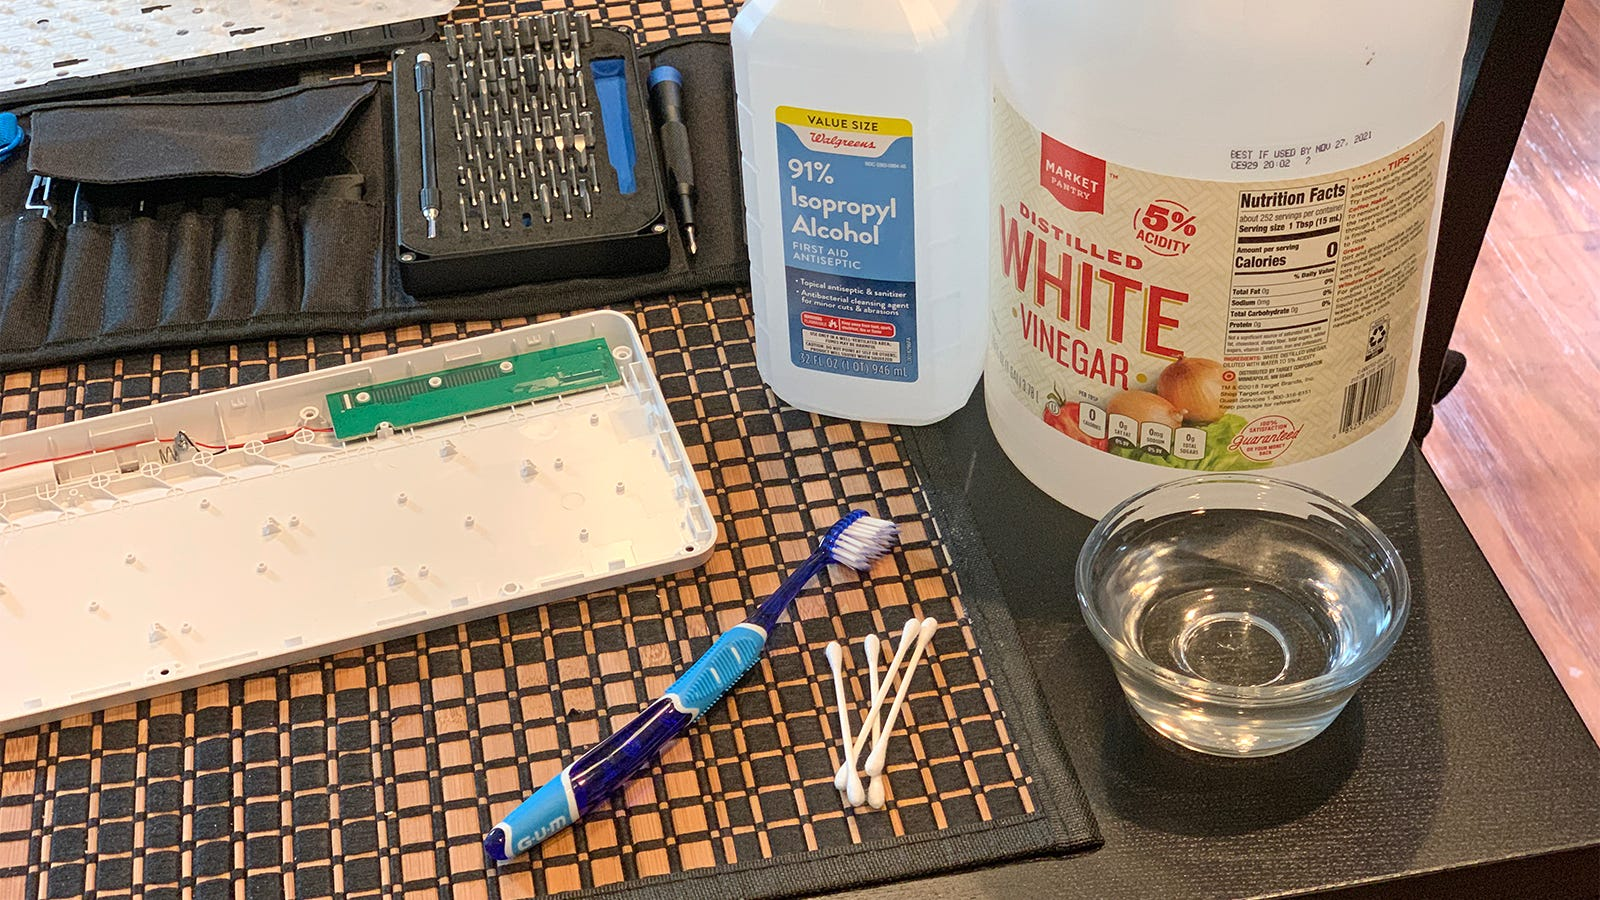 Supplies for cleaning up battery acid inside gadgets